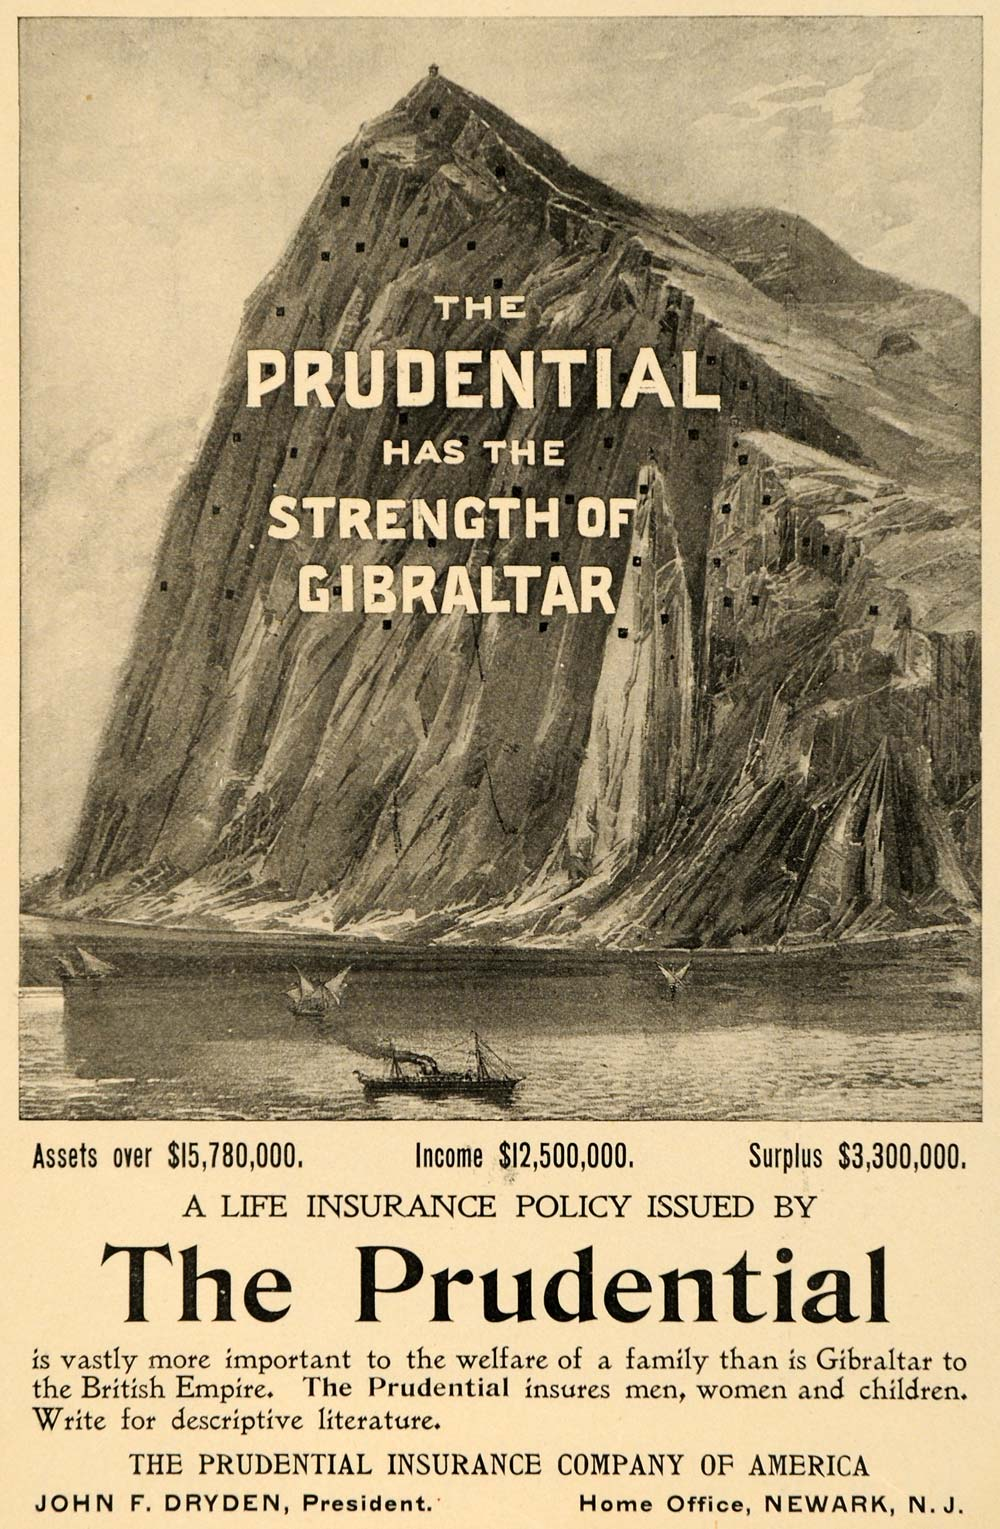 The Rock Of Gibraltar Is Featured In The Logo Of Which Company